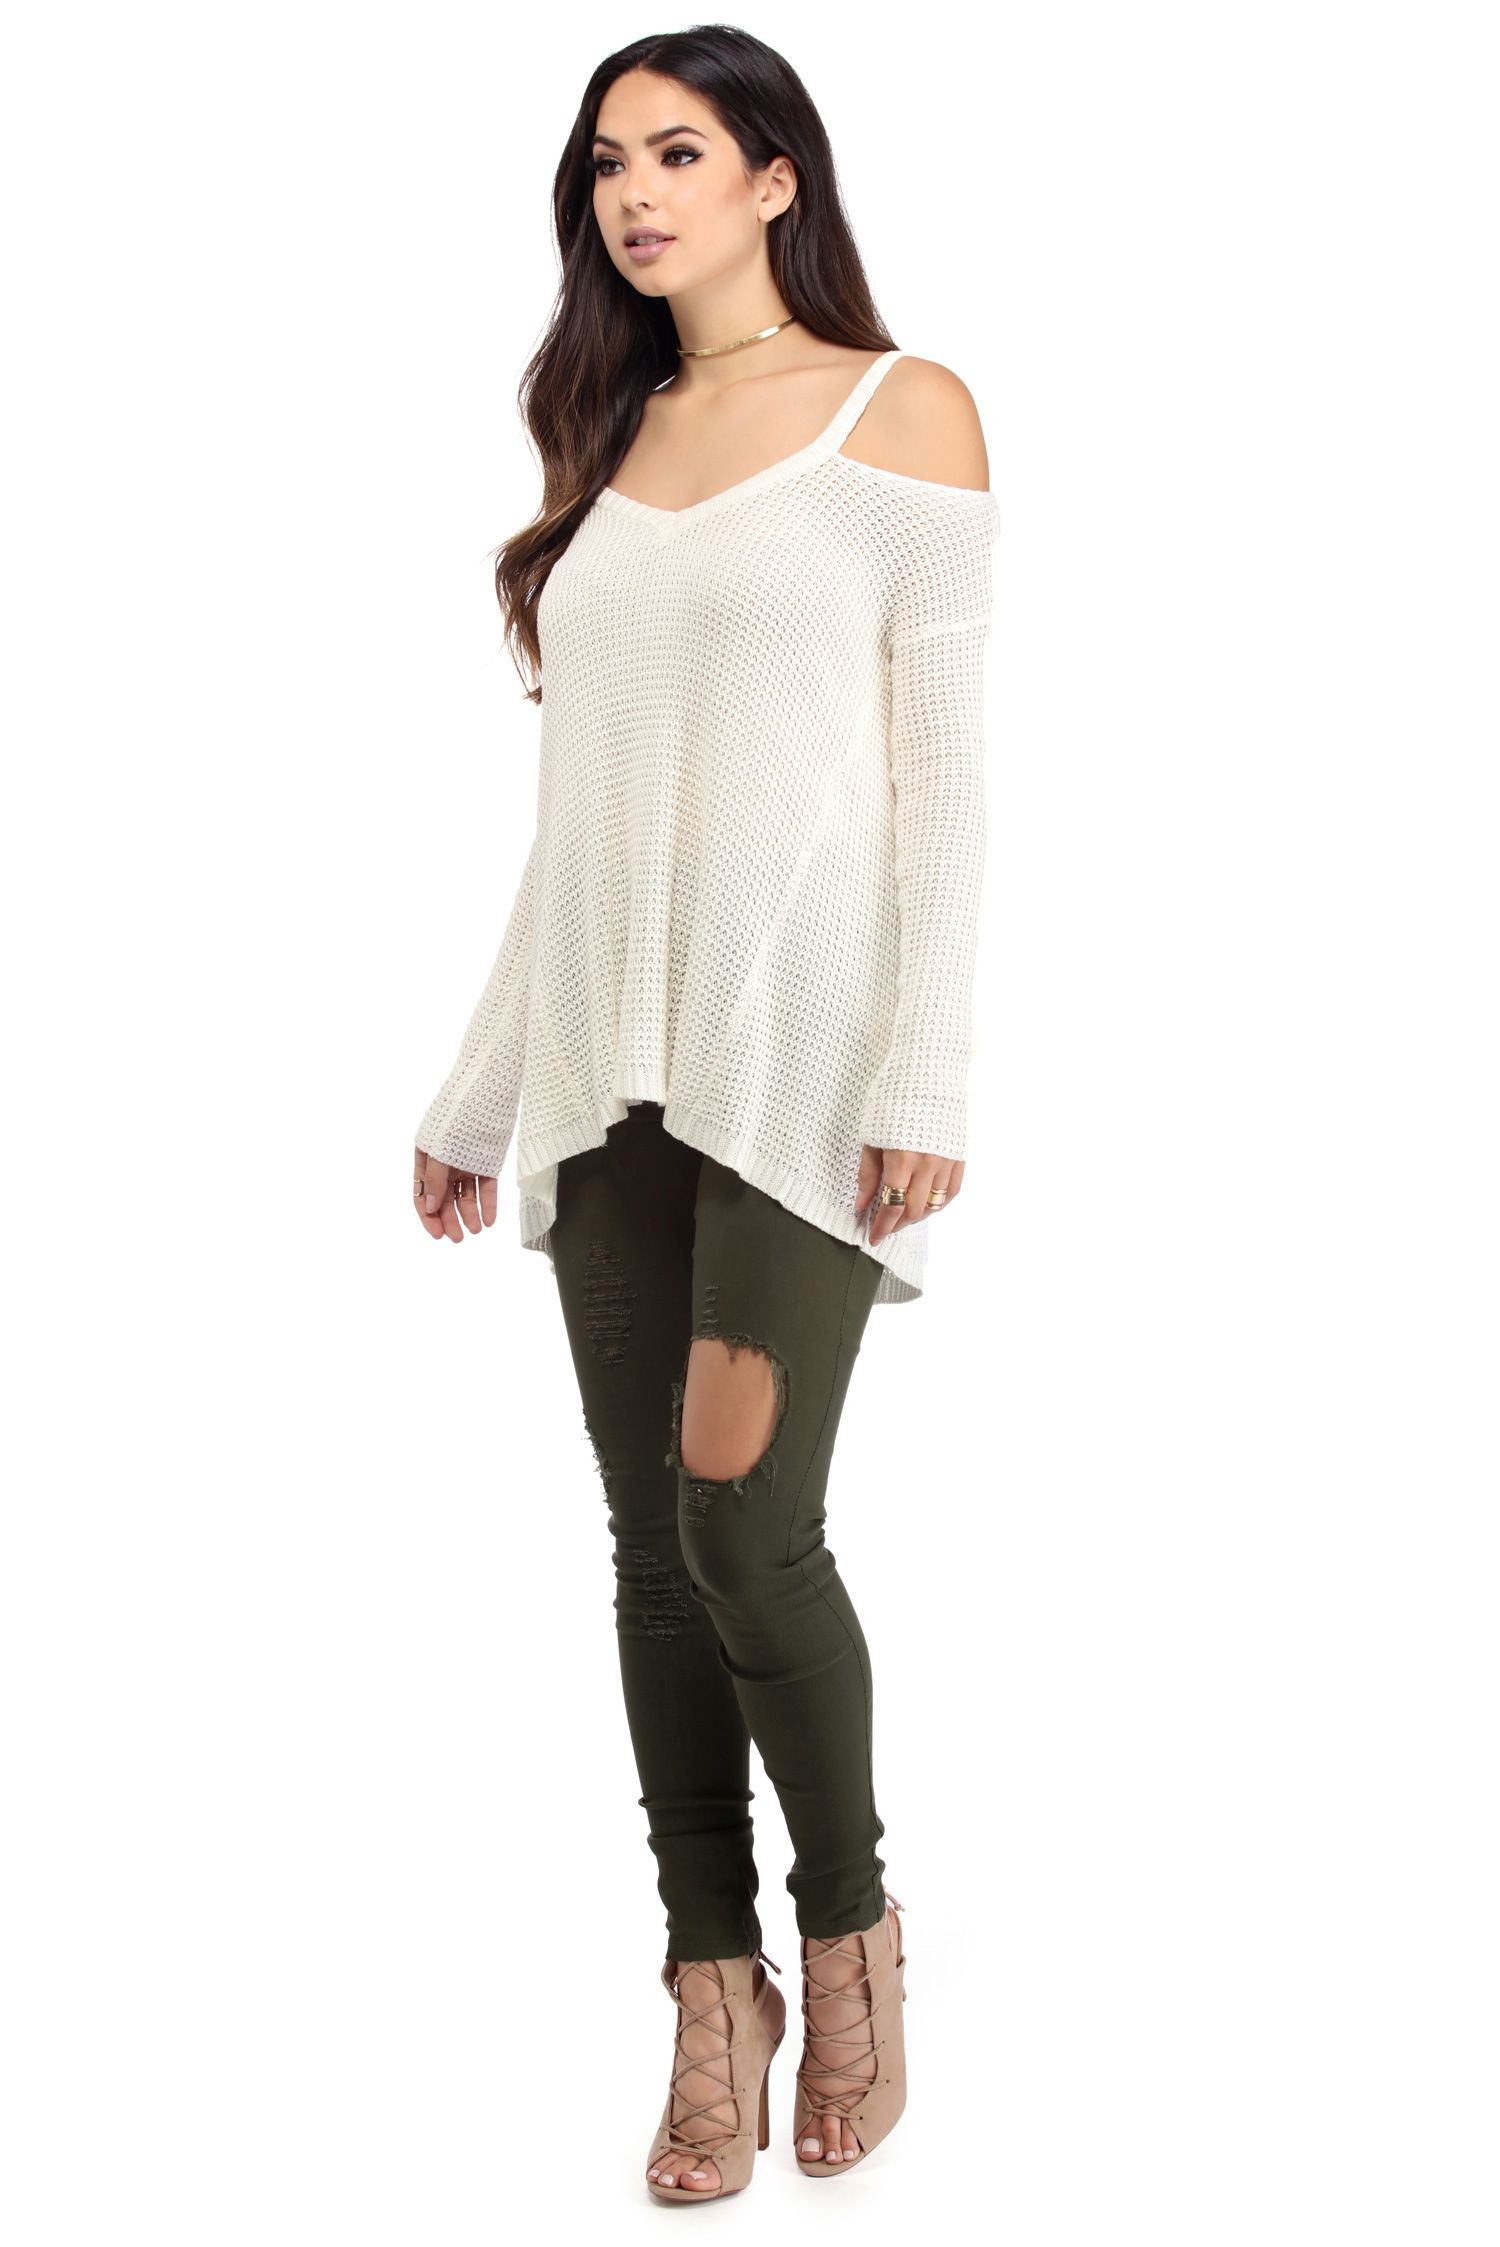 Ivory In The Moment Top | windsor